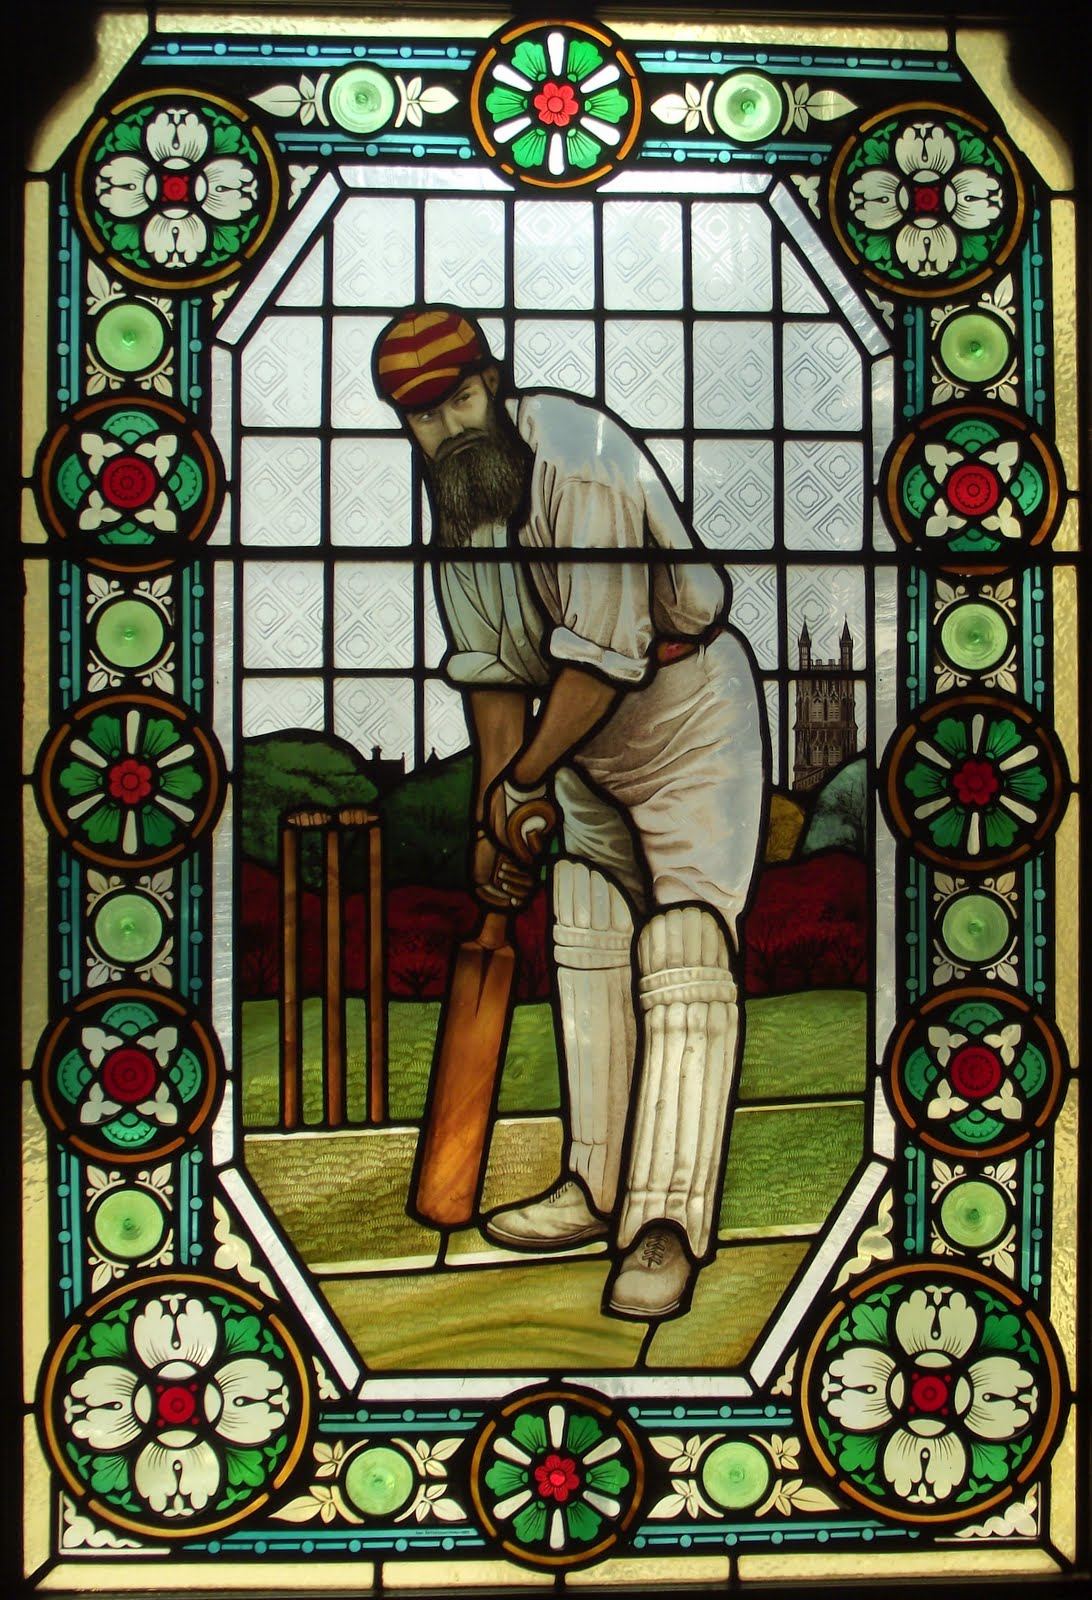 WG Grace a legendary figure whose all round ability and enthusiasm dominated cricket for over thirty years